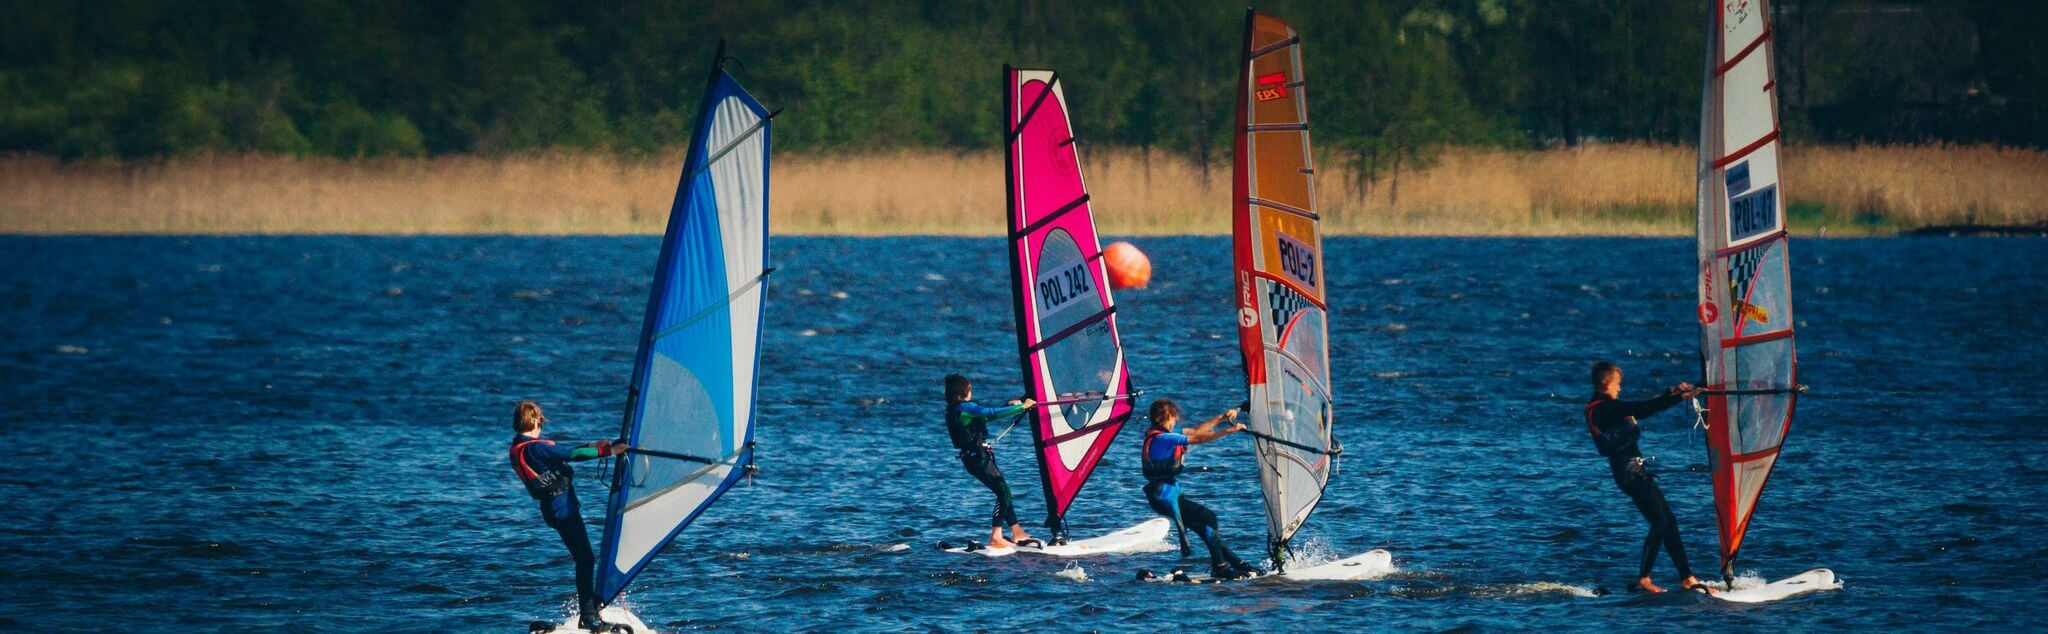 Windsurfing in Merseyside